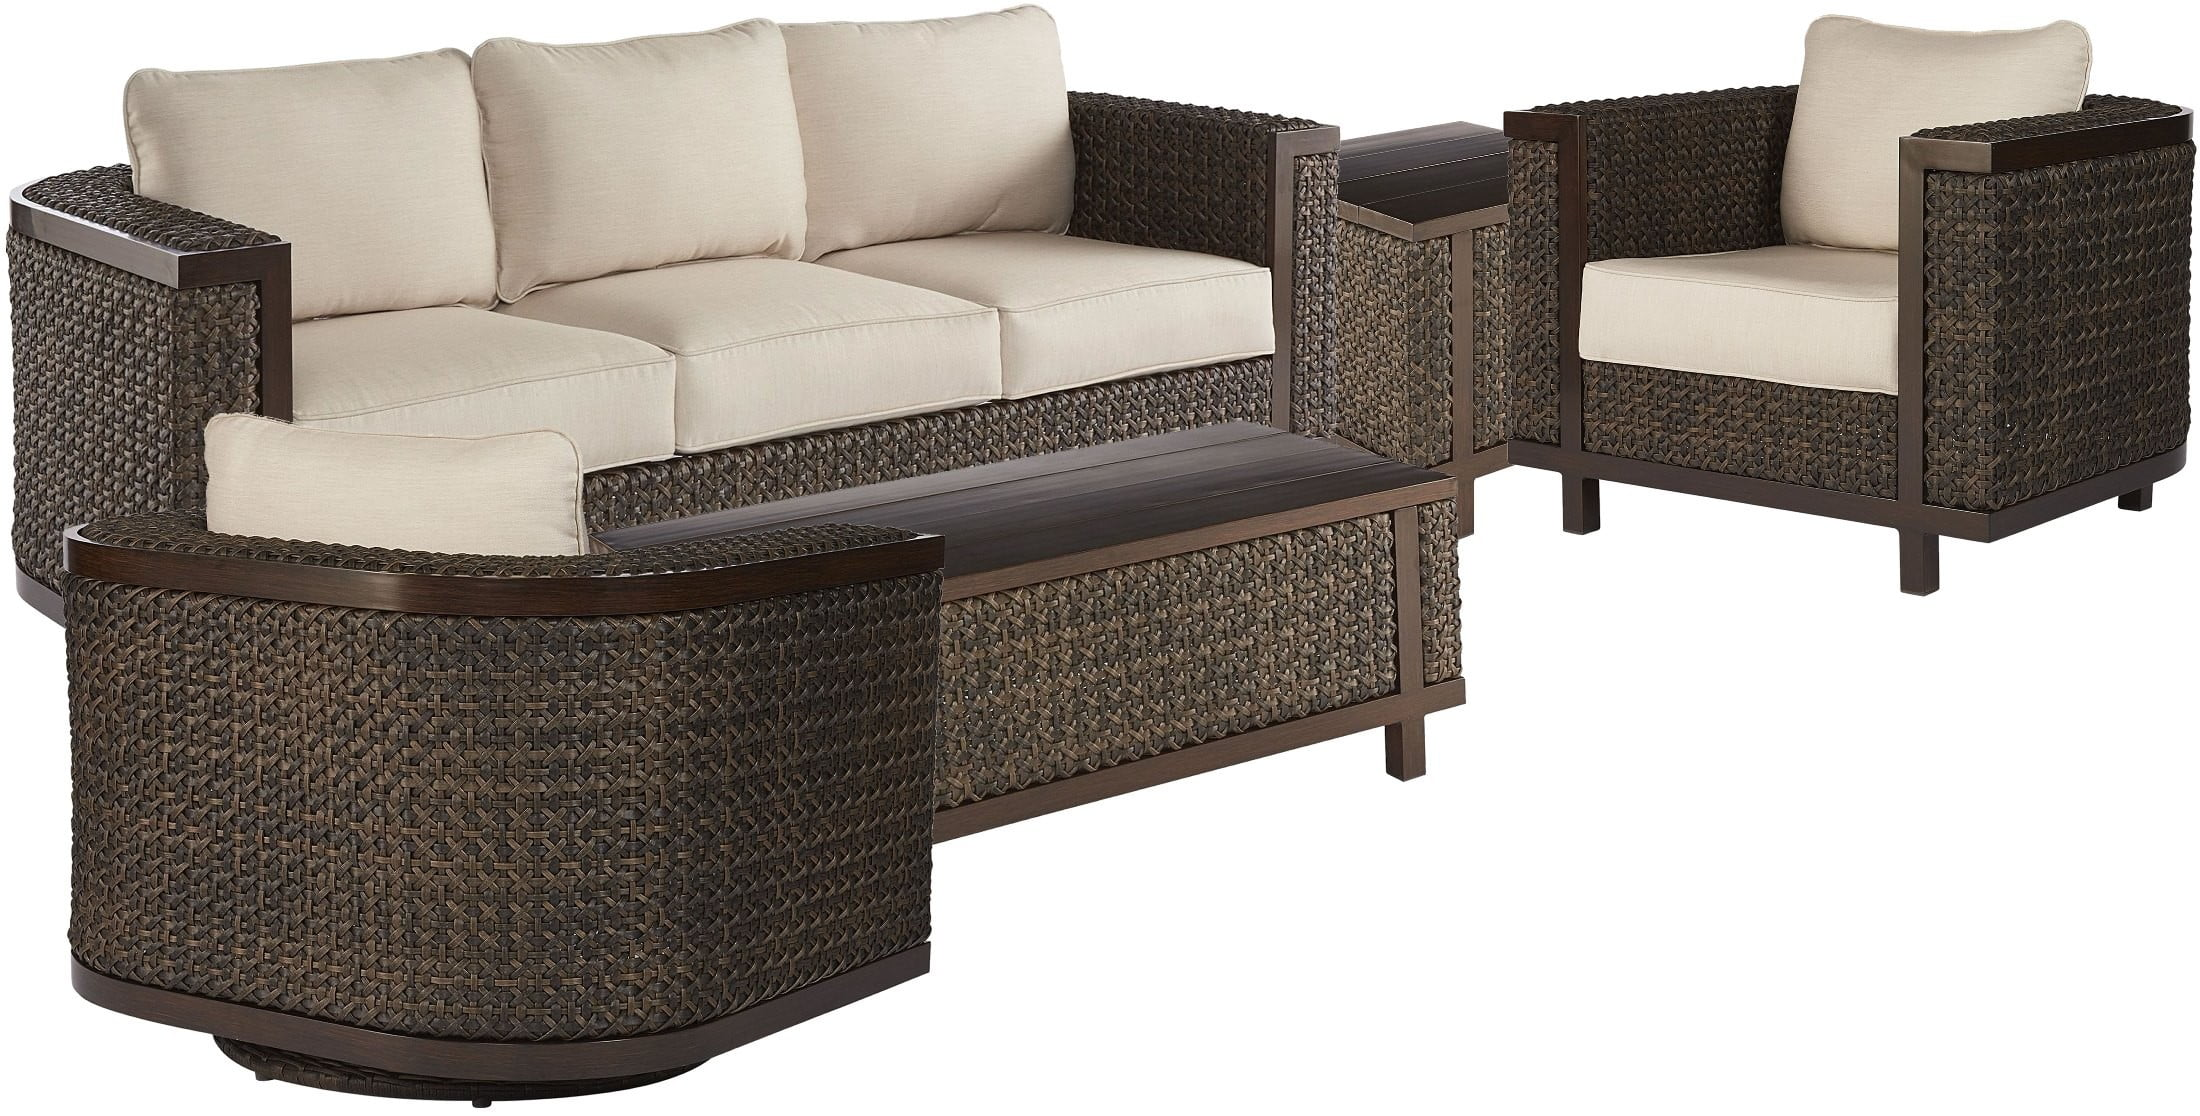 Sofa 60s Epicenters Ebony Brentwood Wicker Outdoor Conversation Set